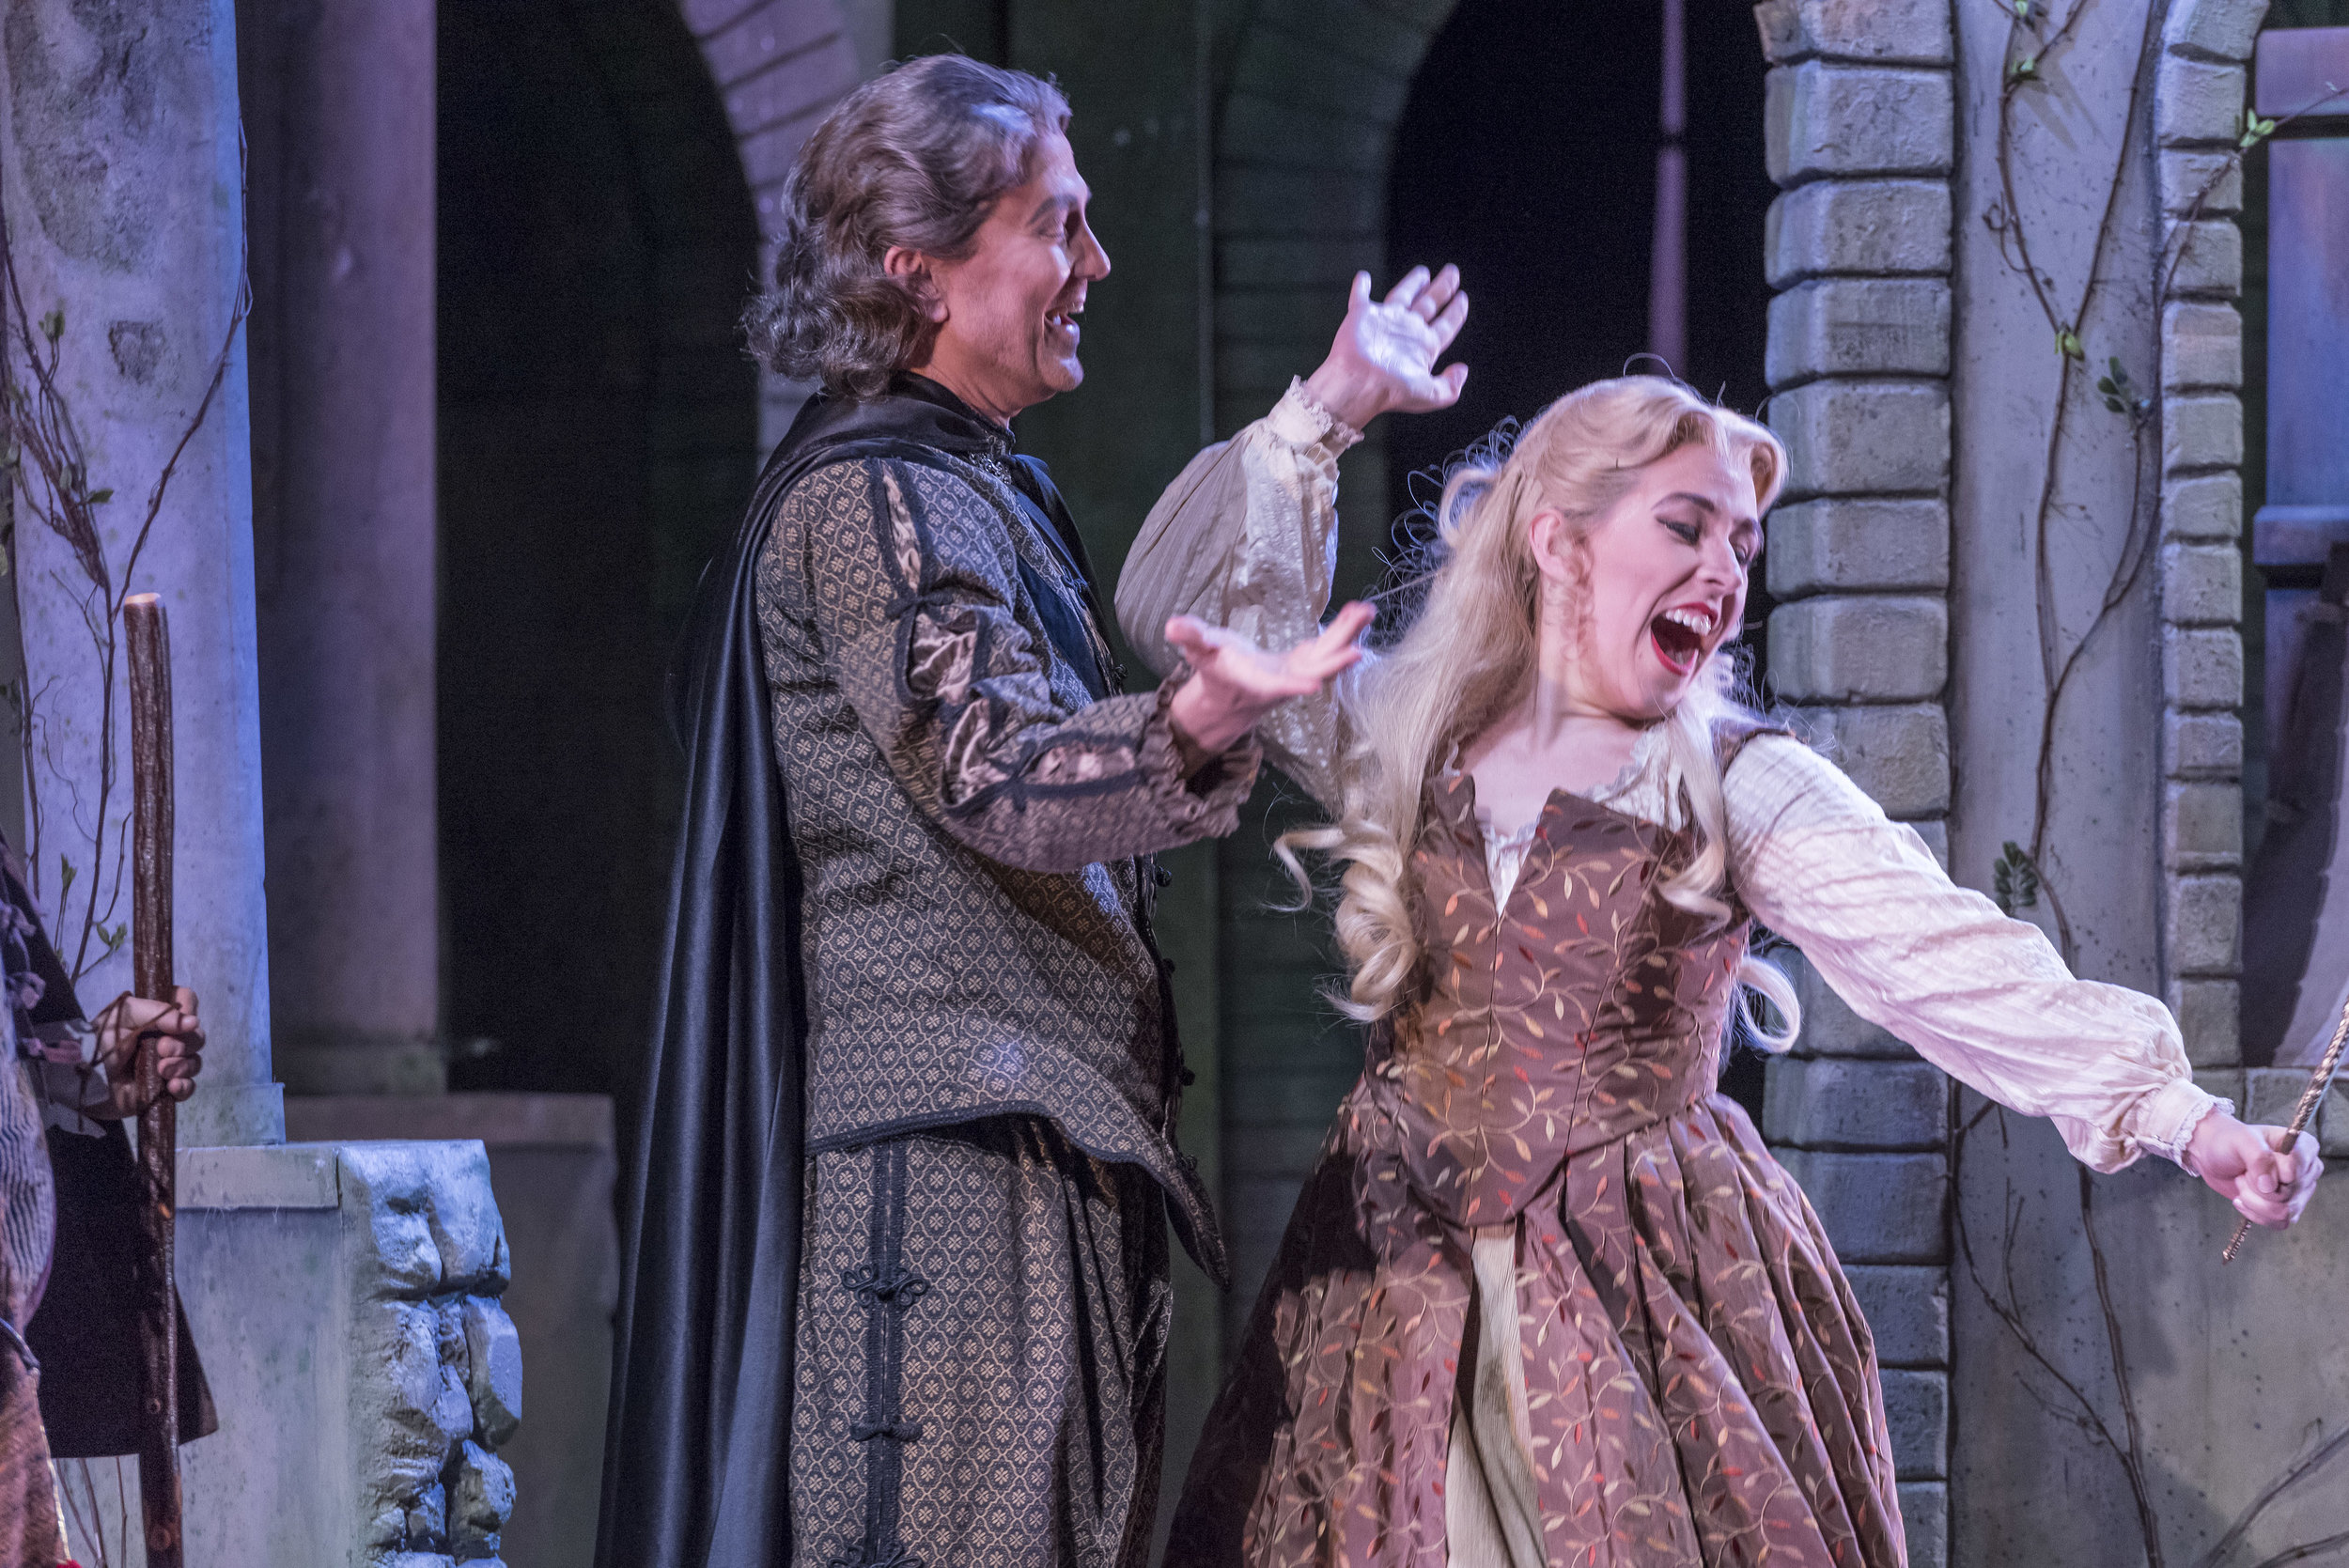 """Opera Saratoga '17 - """"Apprentice Artist Katherine Maysek (Lisbé) acted amusingly and sang healthily as Zémire's """"Material Girl"""" sisters."""" - Opera News """"Two members of the Opera Saratoga Young Artist Program, soprano Lisa Rogali and mezzo-soprano Katherine Maysek, played, respectively, Sanders' two other daughters, the vain and flighty Fatme and Lisbe. Both performers offered pert, preening delight and evinced clean mastery of the sprightly yet demanding vocal lines with which Grétry's score tasks them."""" - La Scena Musicale""""Katherine Maysek and Lisa Marie Rogali play her two sisters, Fatmé and Lisbé, whose vanity is easily redeemable as the audience learns they do care for their family's well-being but go about it the wrong way. The two act like a humorous duo as they're almost always seen providing sight gags together, like Tweedledee and Tweedledum."""" - Spotlight NewsPhoto: Gary David Gold"""